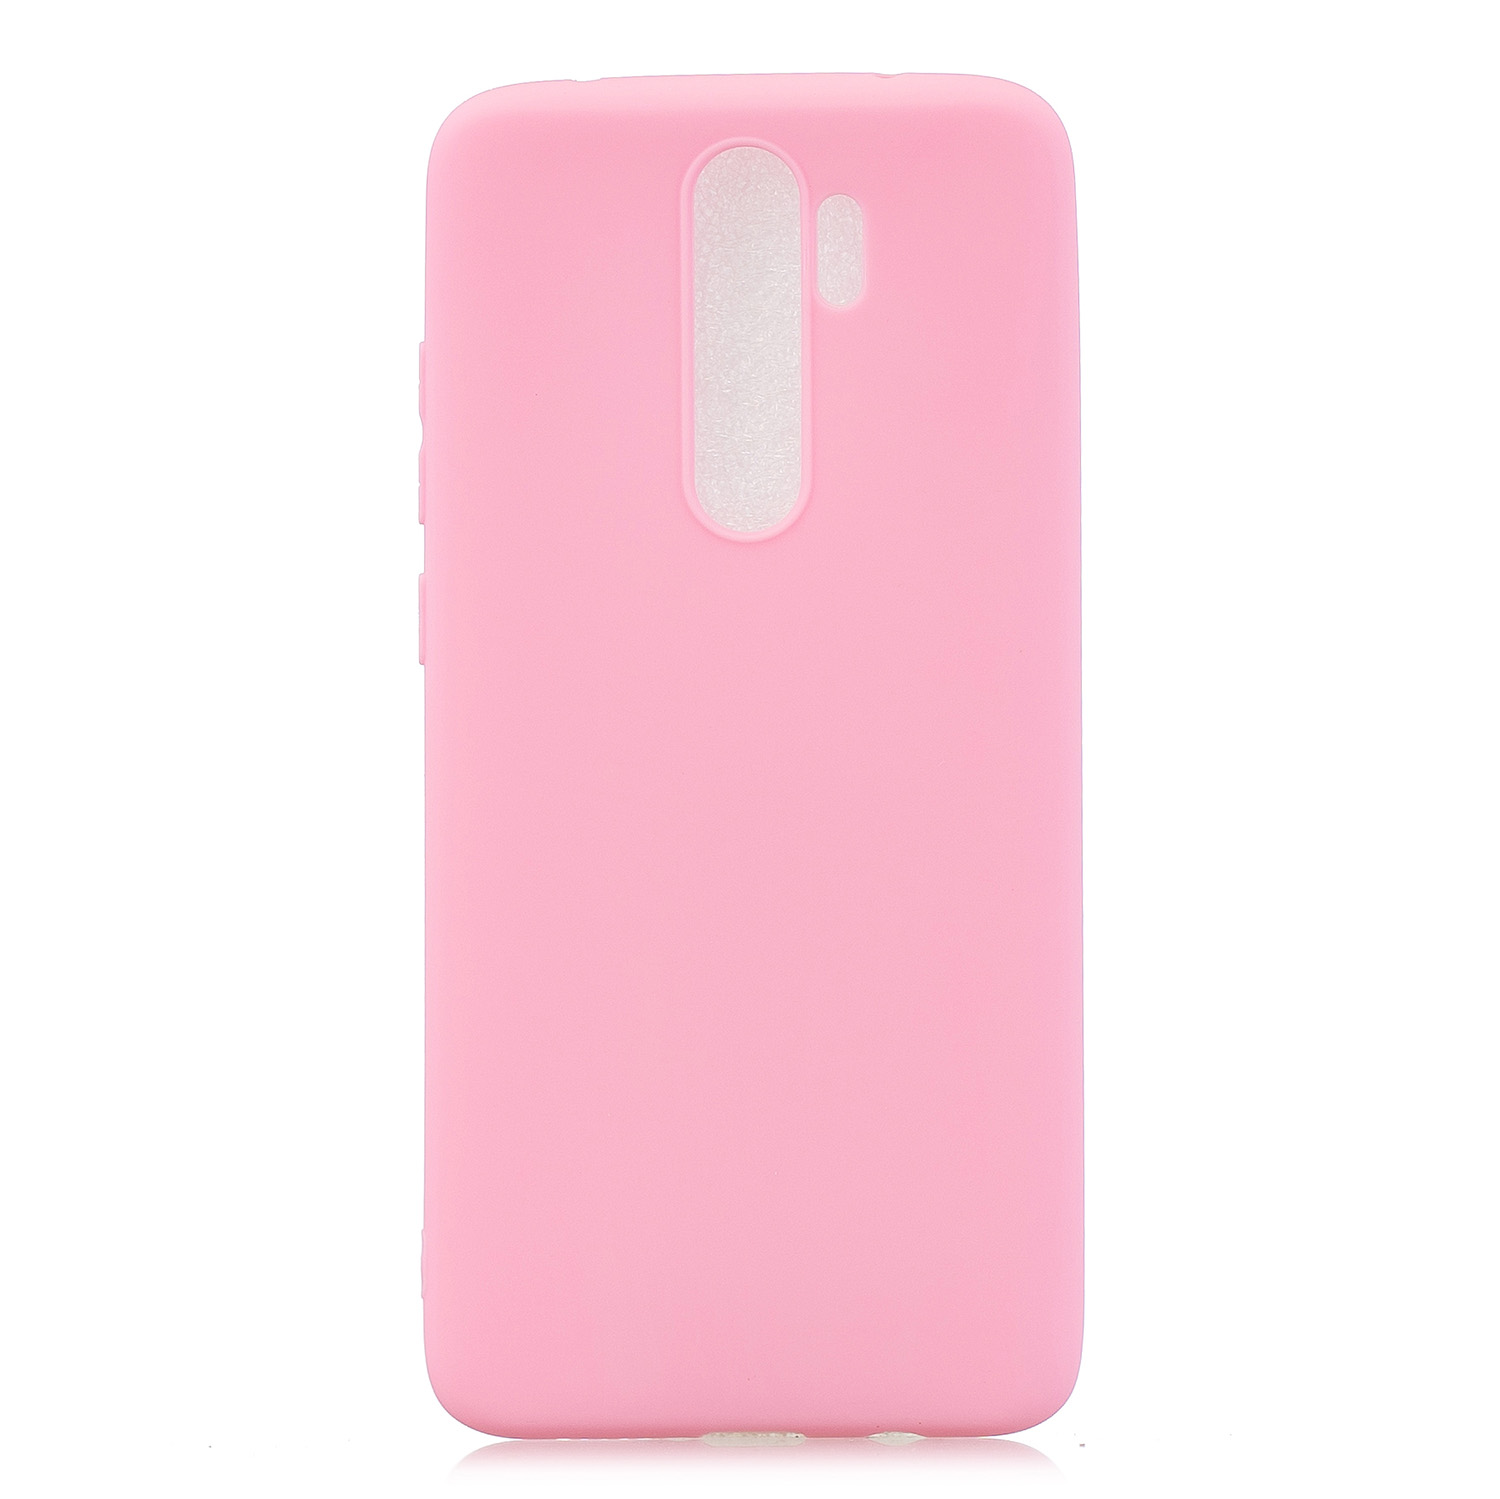 For Redmi NOTE 8 NOTE 8 Pro Soft Candy Color Frosted Surface Shockproof TPU Back Cover Mobile Phone Case dark pink